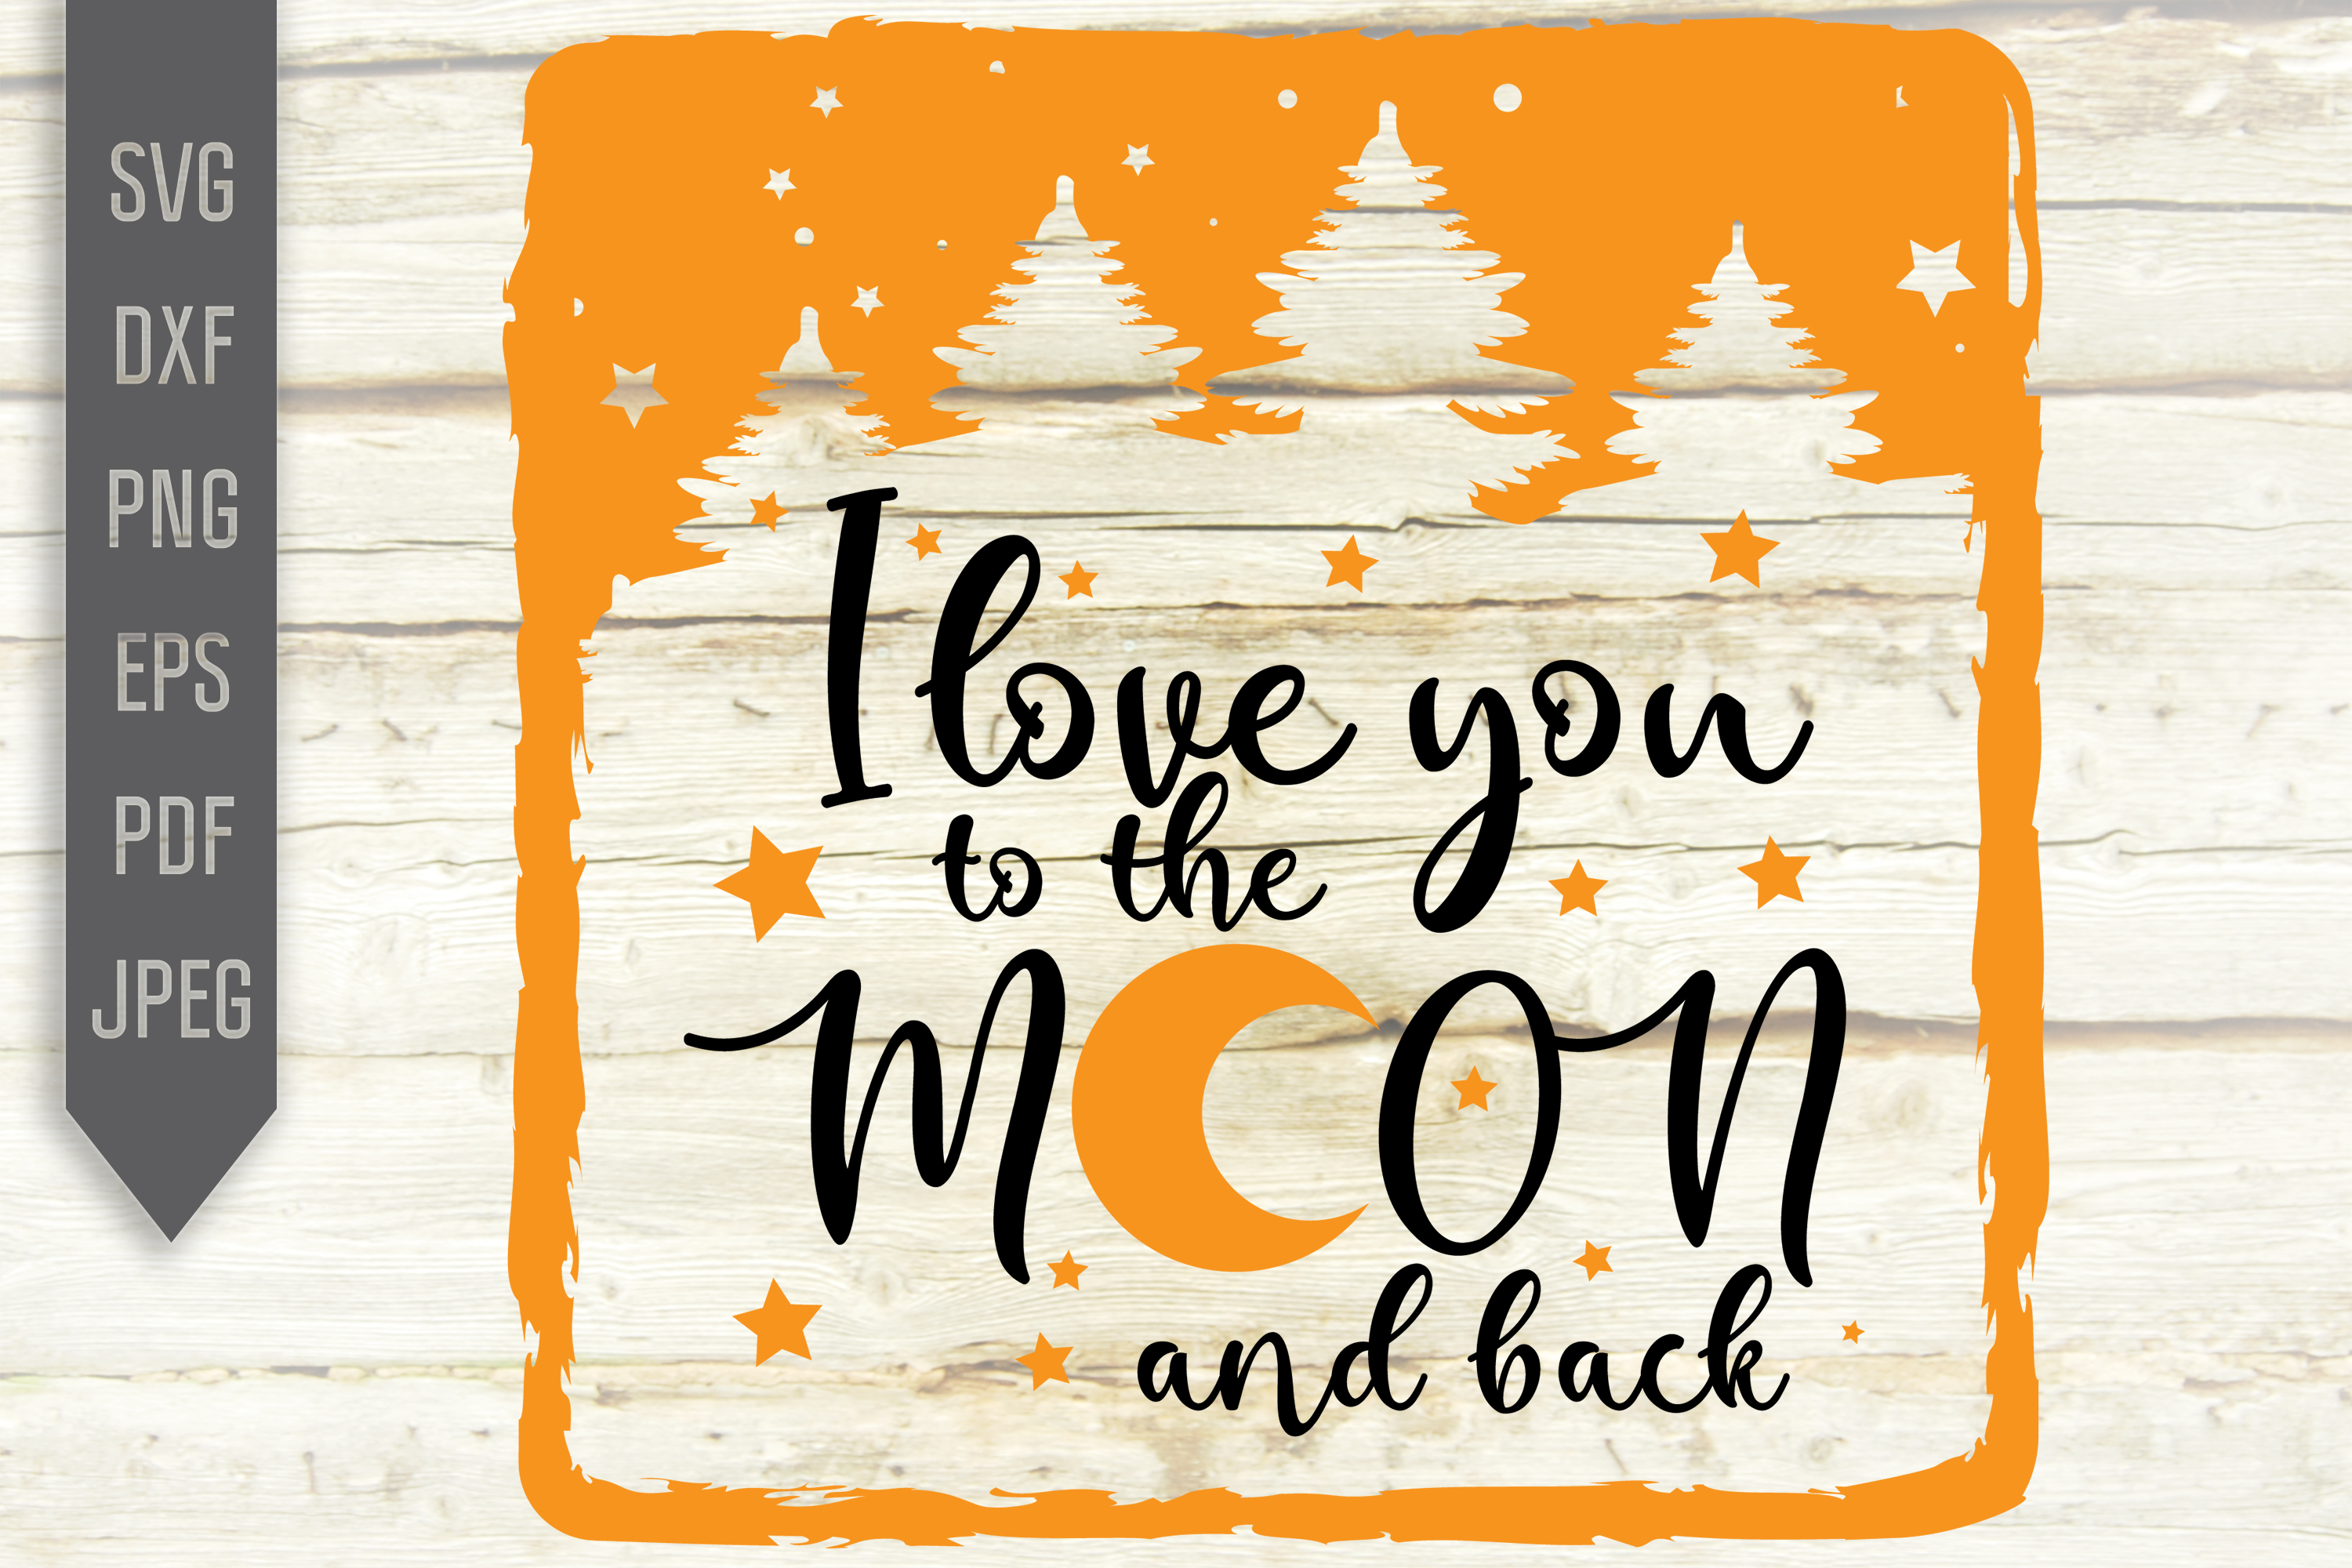 Download Free I Love You To The Moon And Back Svg Graphic By Svglaboratory for Cricut Explore, Silhouette and other cutting machines.